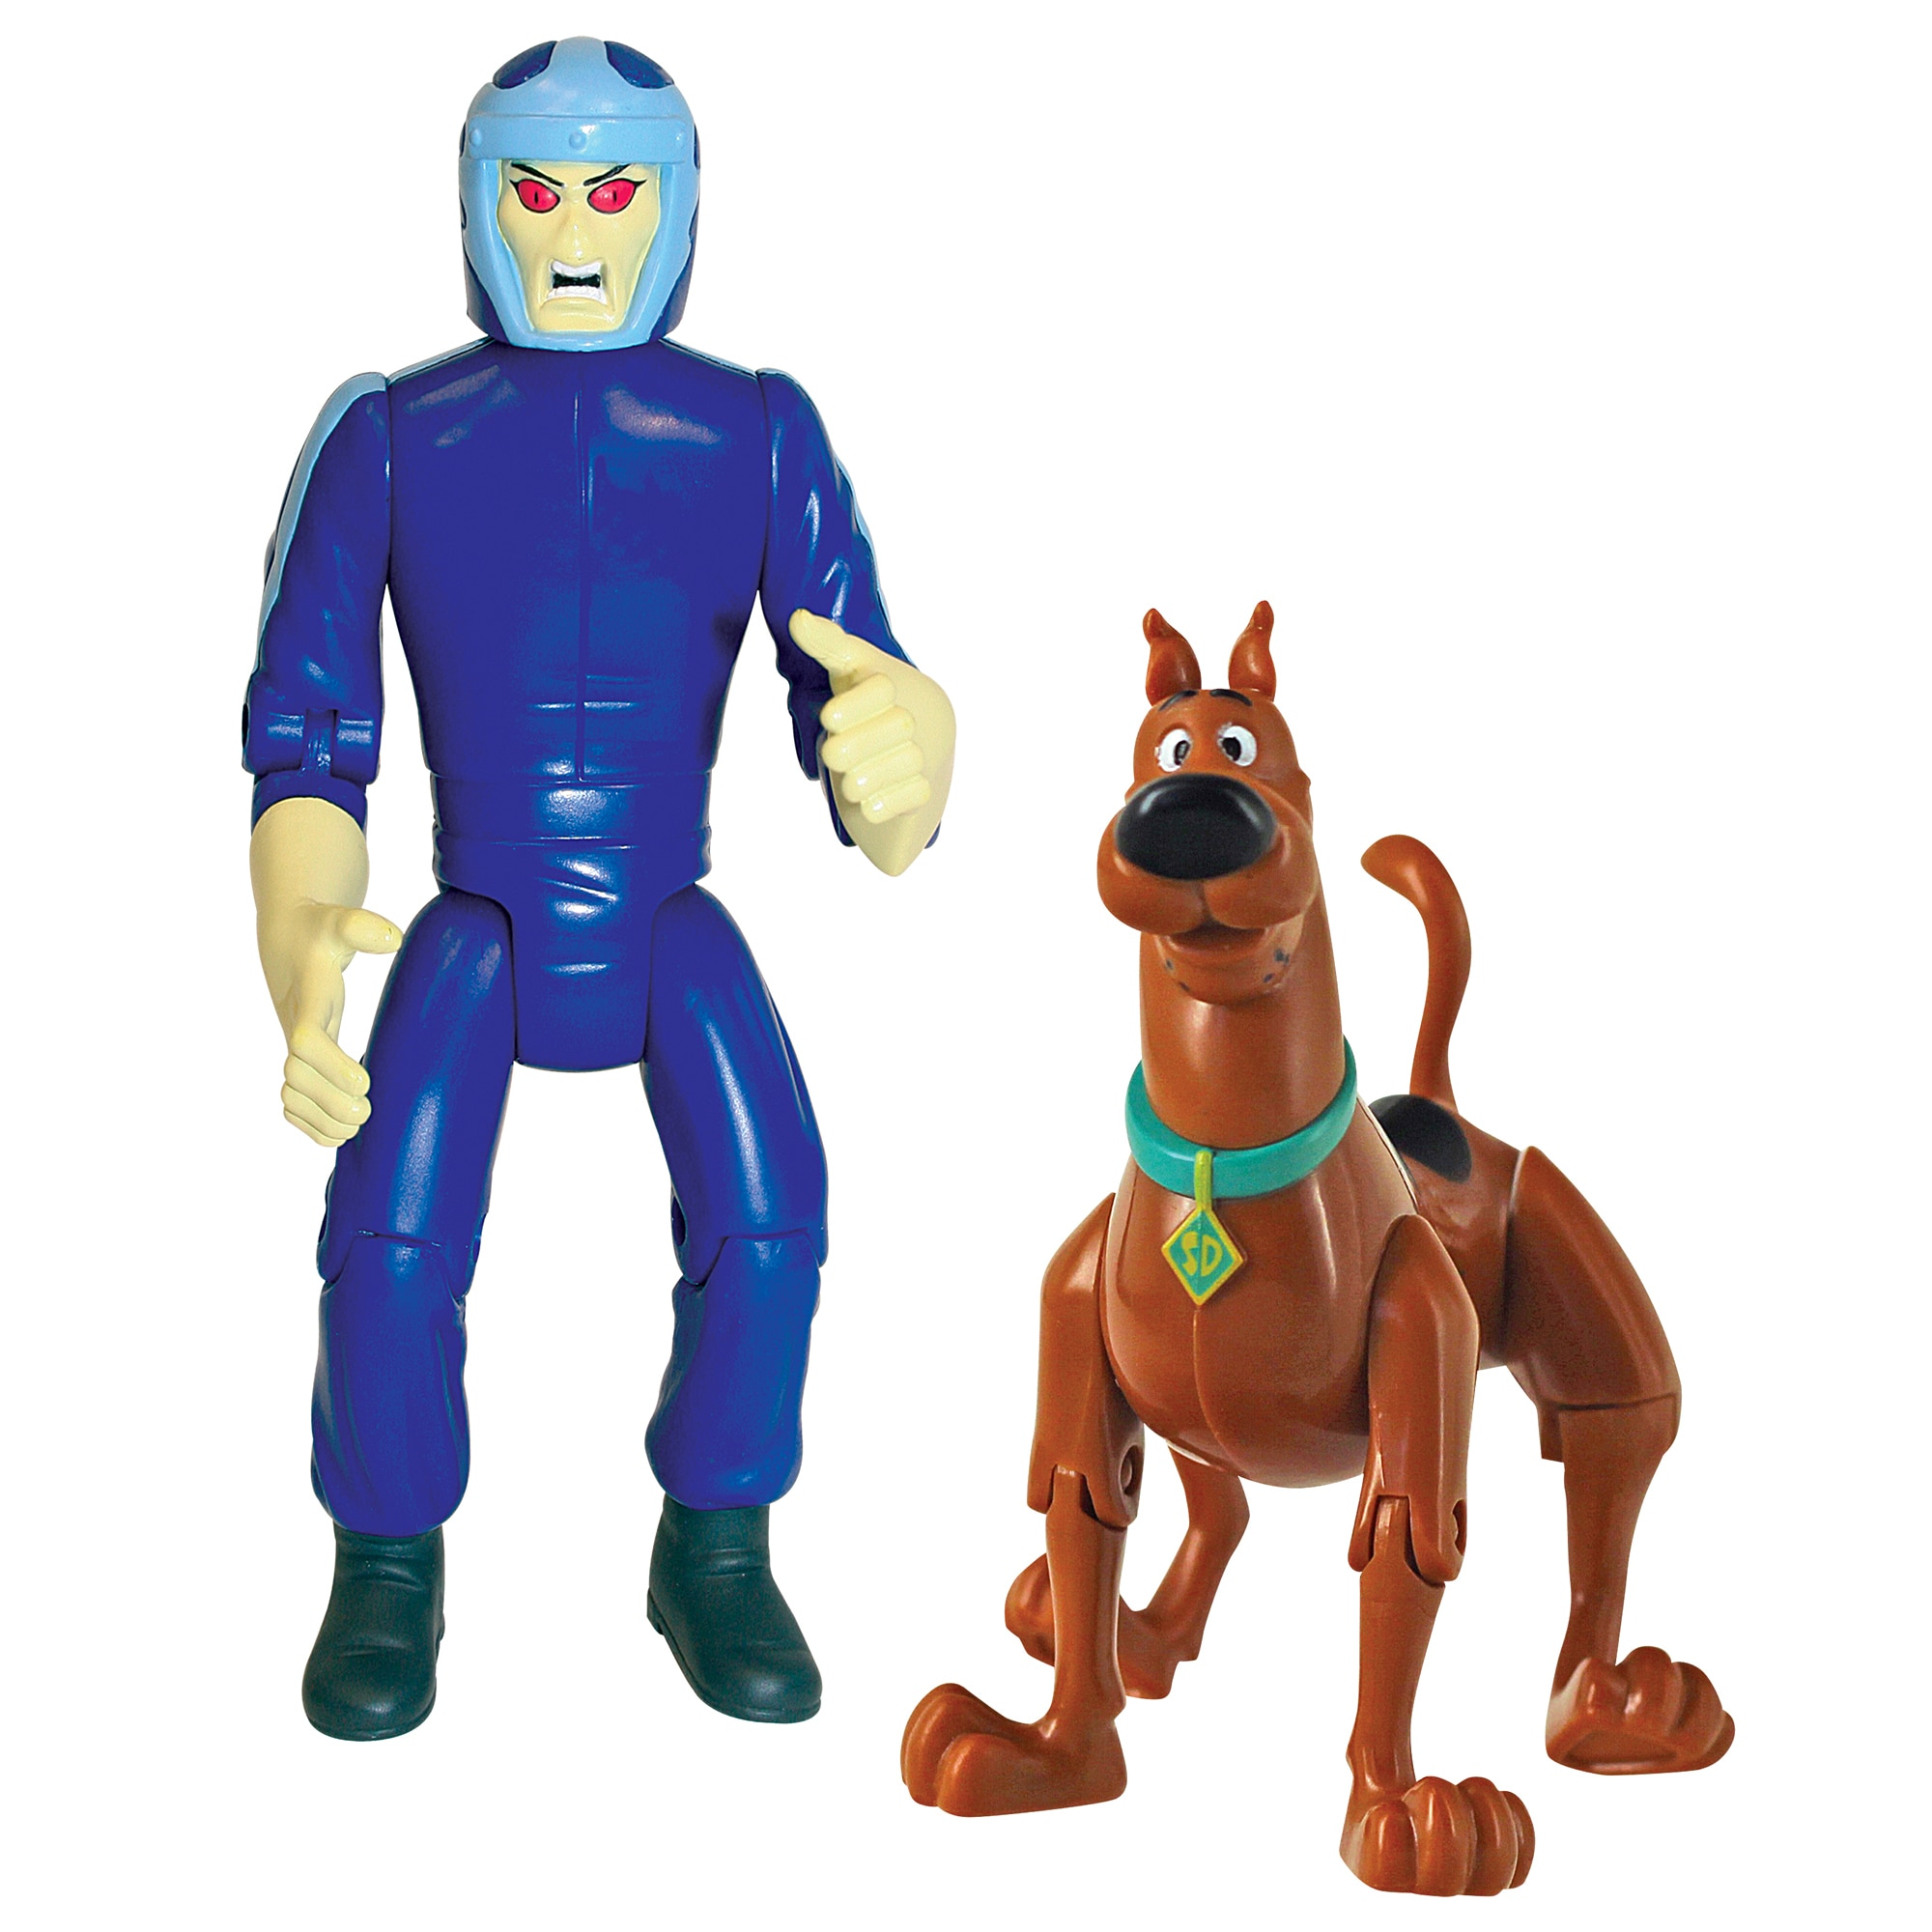 Scooby Doo Twin Pack 5 inch Action Figures Scooby and Pha...